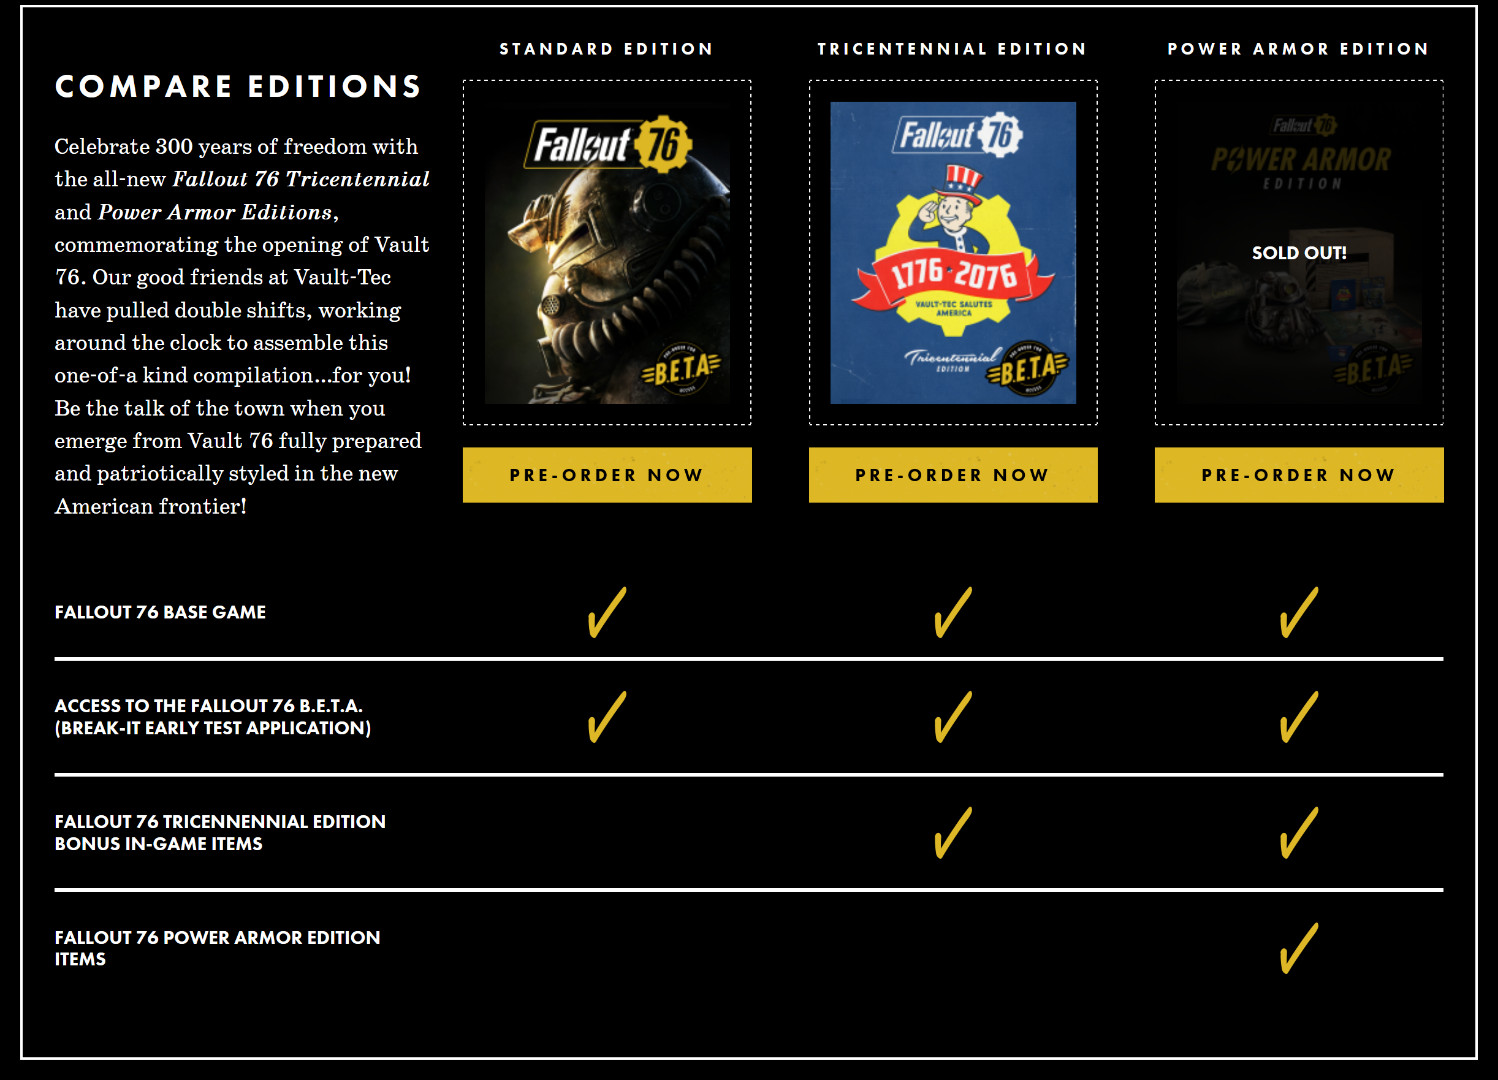 fallout 76 tricentennial edition difference